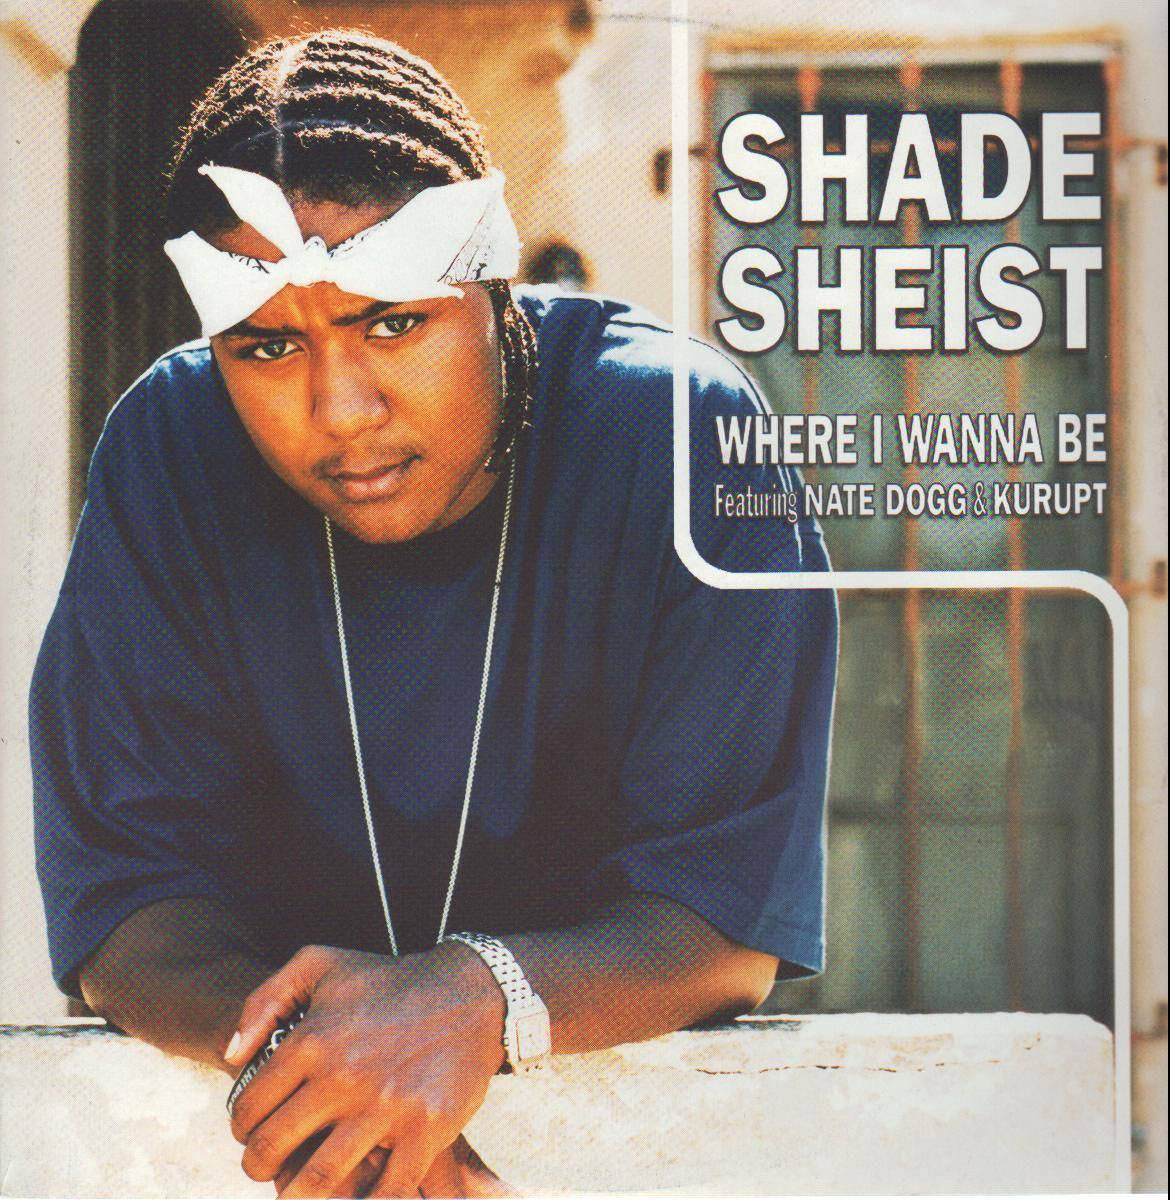 """Shade Sheist featuring Nate Dogg, """"Where I Wanna Be"""" - Nate gave an assist to a fellow West Coaster when he sang the hook on this 2000 single from Shade Sheist. It turned out to be the up and comer's breakout and biggest hit.(Photo:Sire Records, London Records)"""